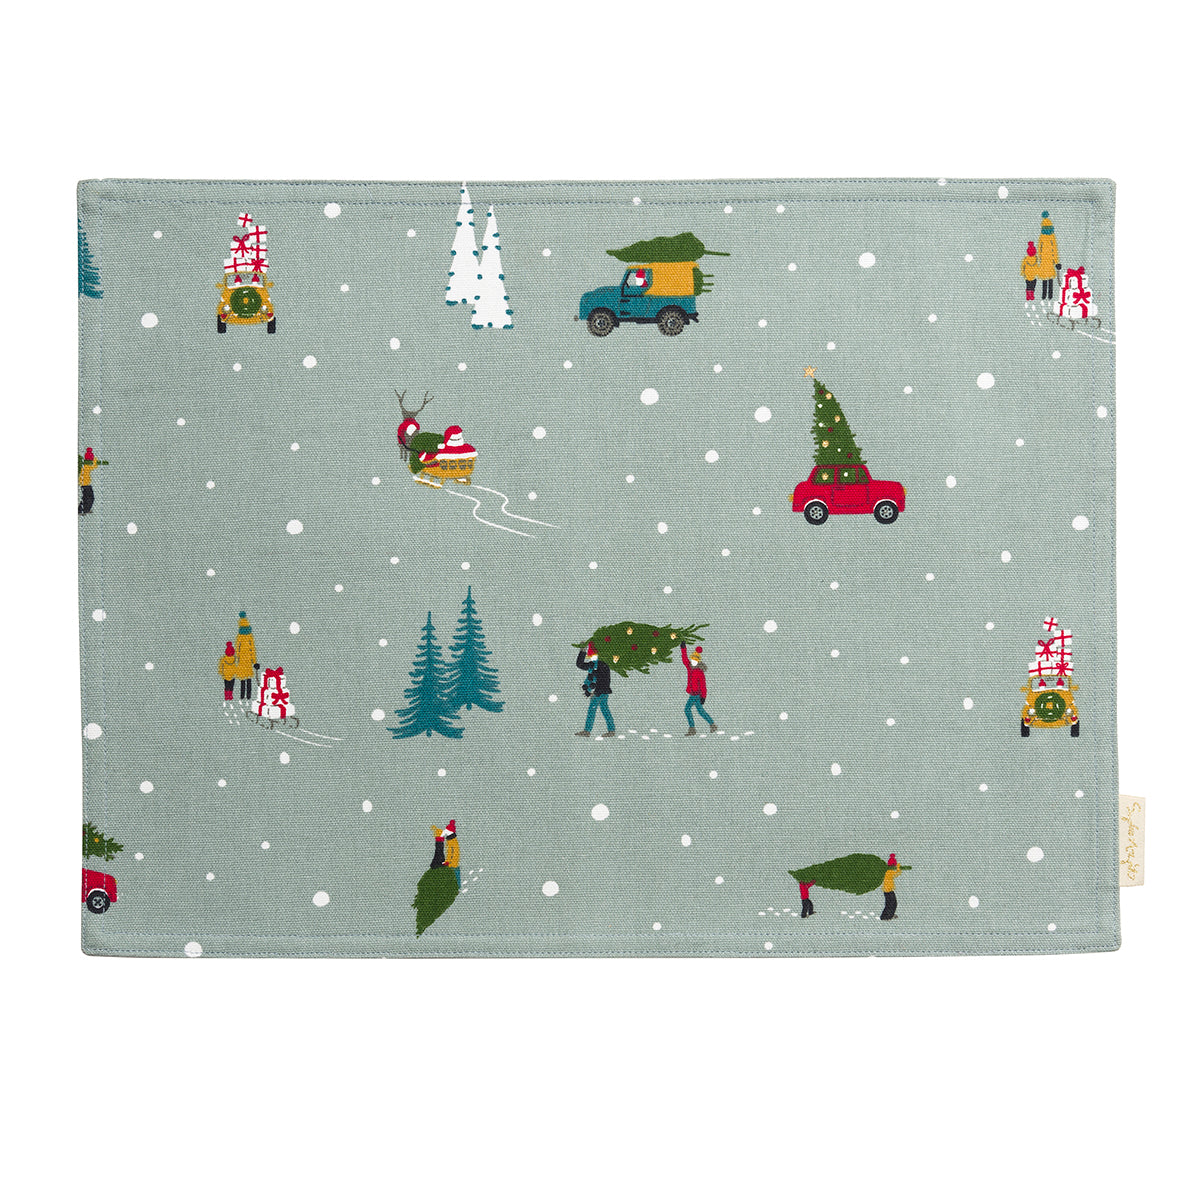 Home for Christmas Fabric Placemat